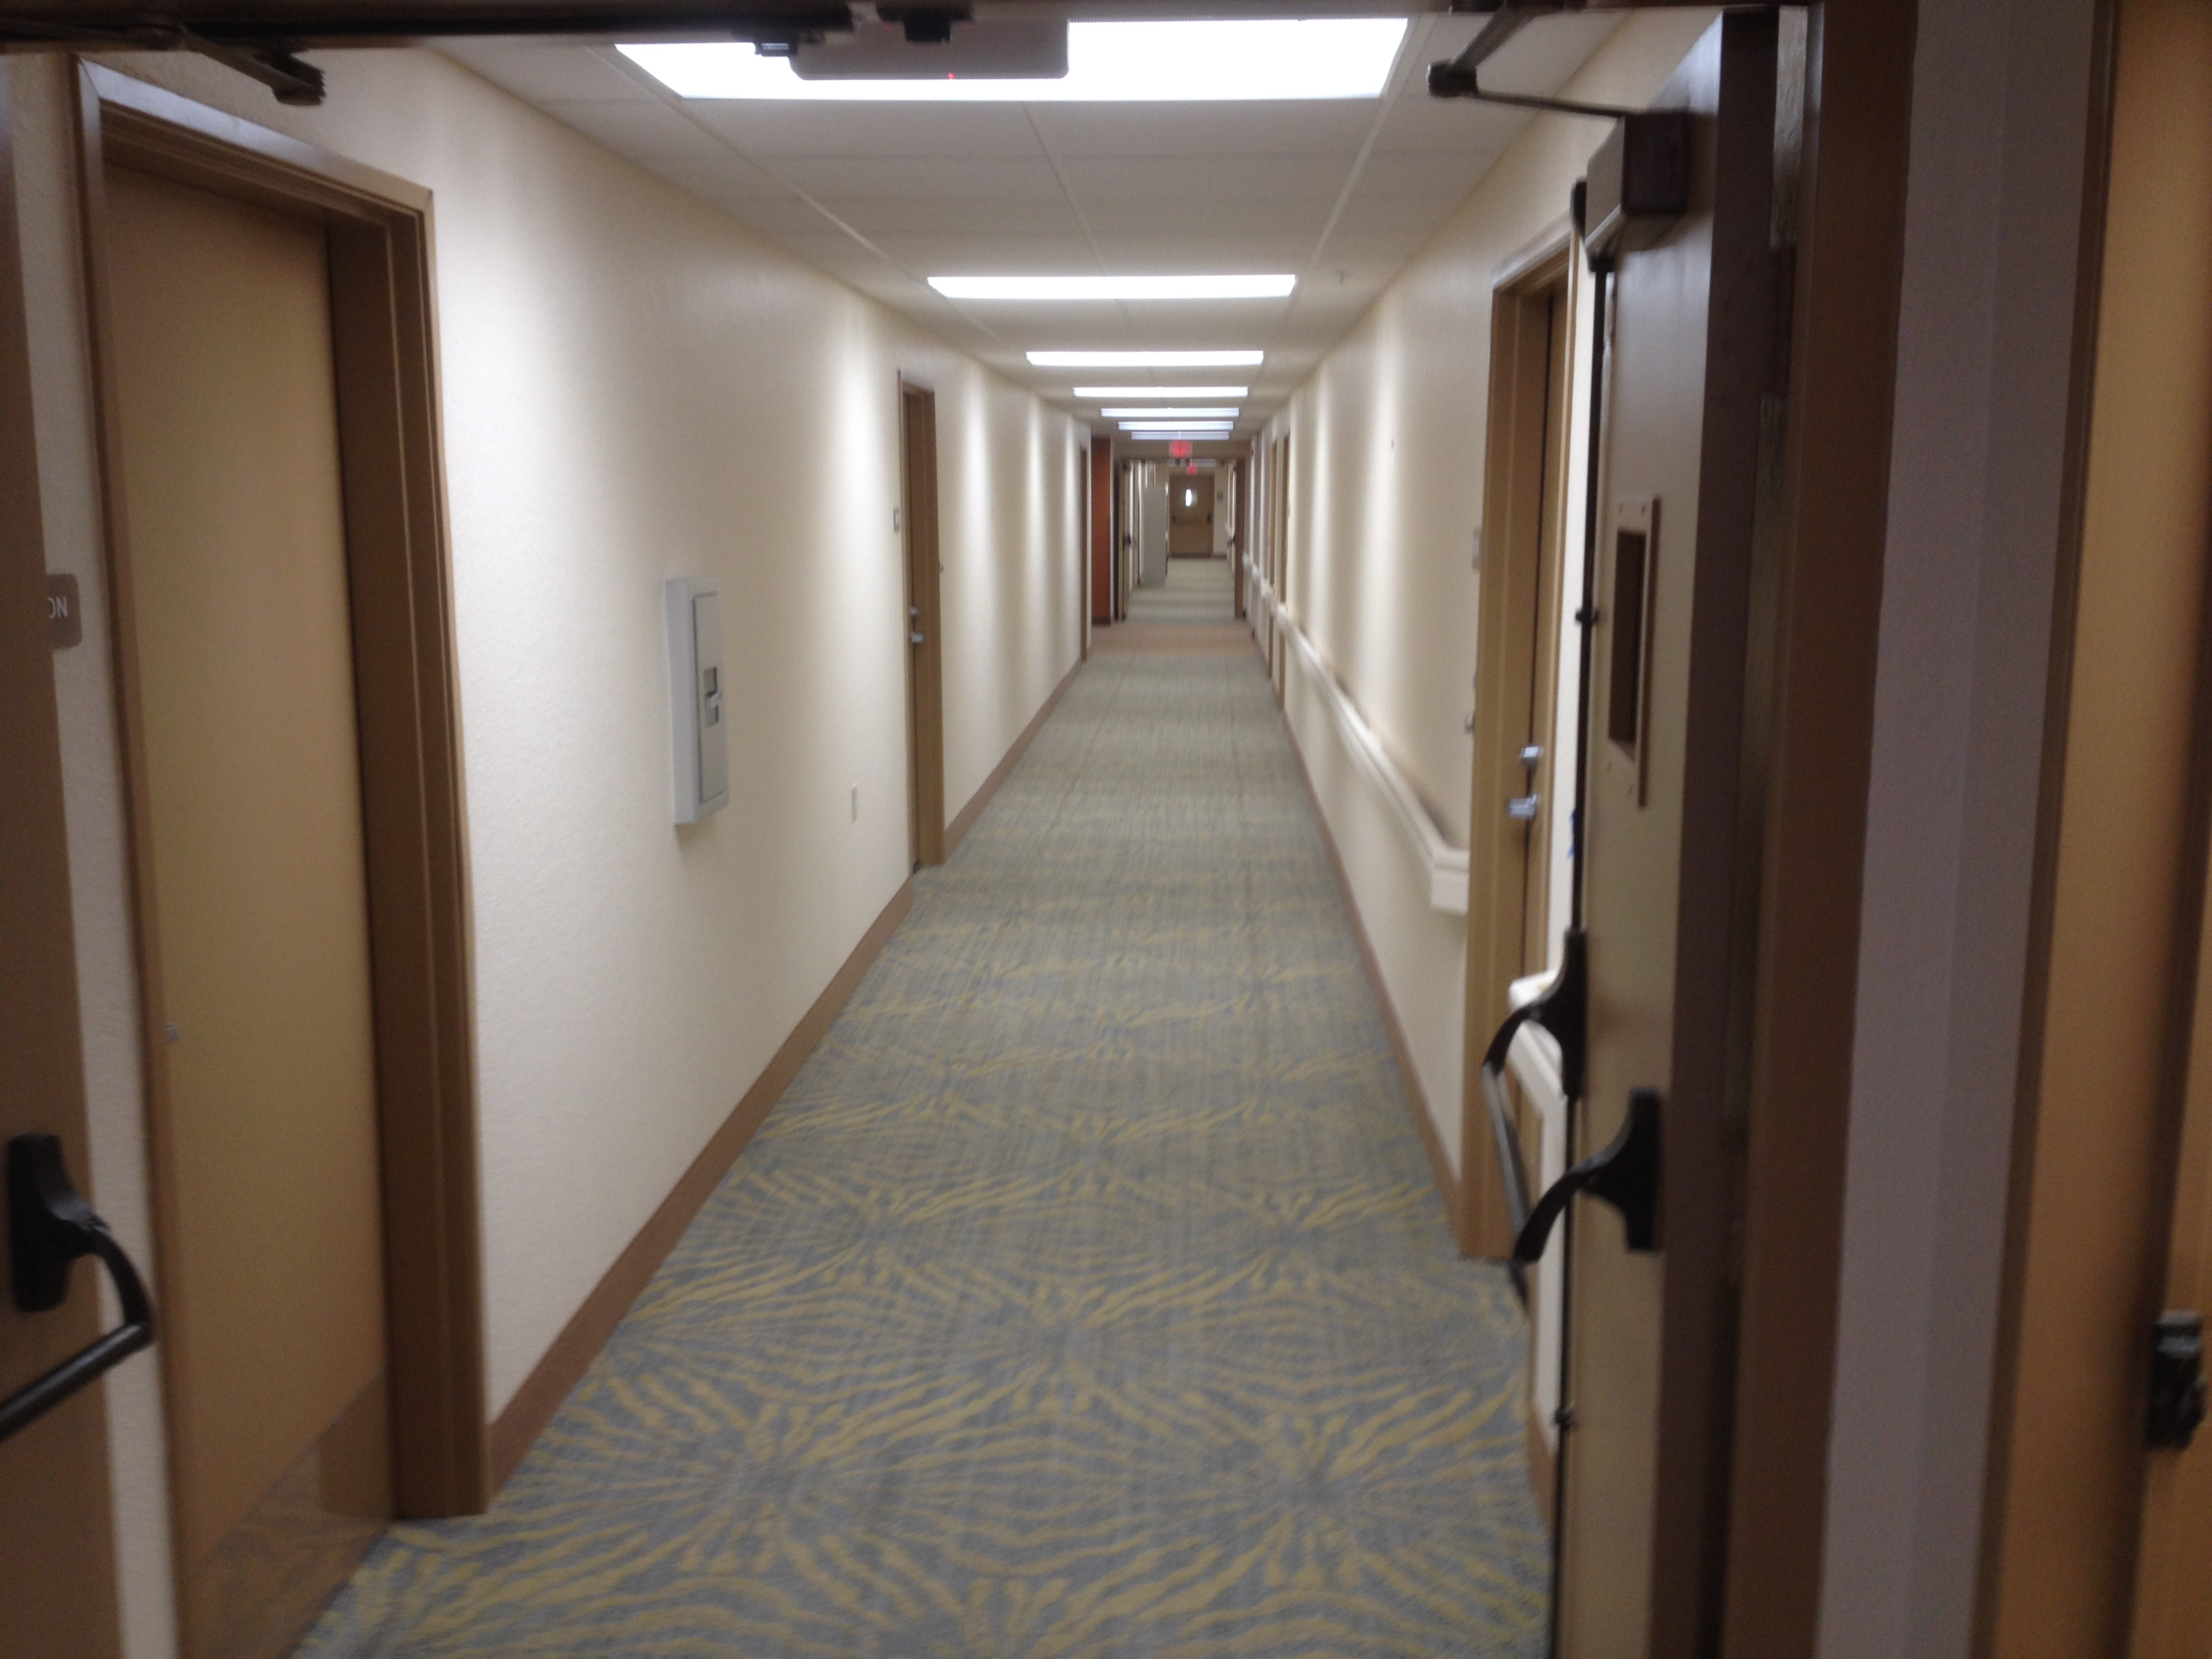 Dormitory Hallway Photo Showcasing White Painted Walls and Brown Painted Door Colors